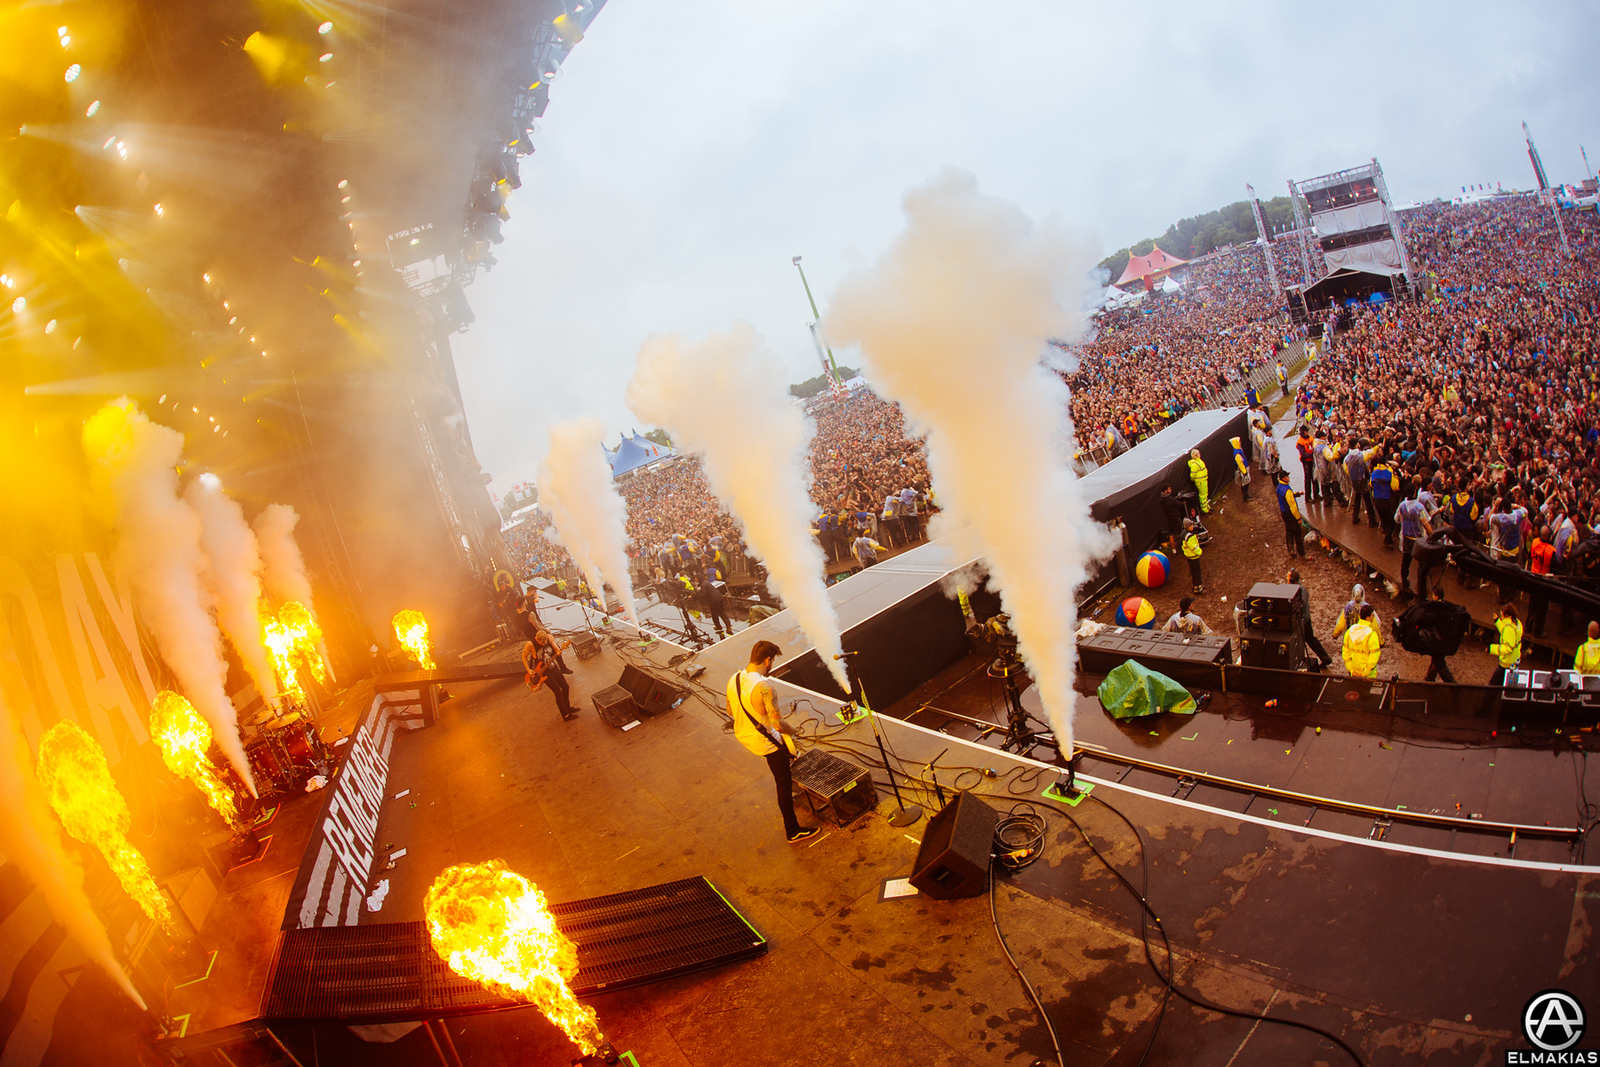 A Day To Remember live at Download Festival in Leicestershire, England